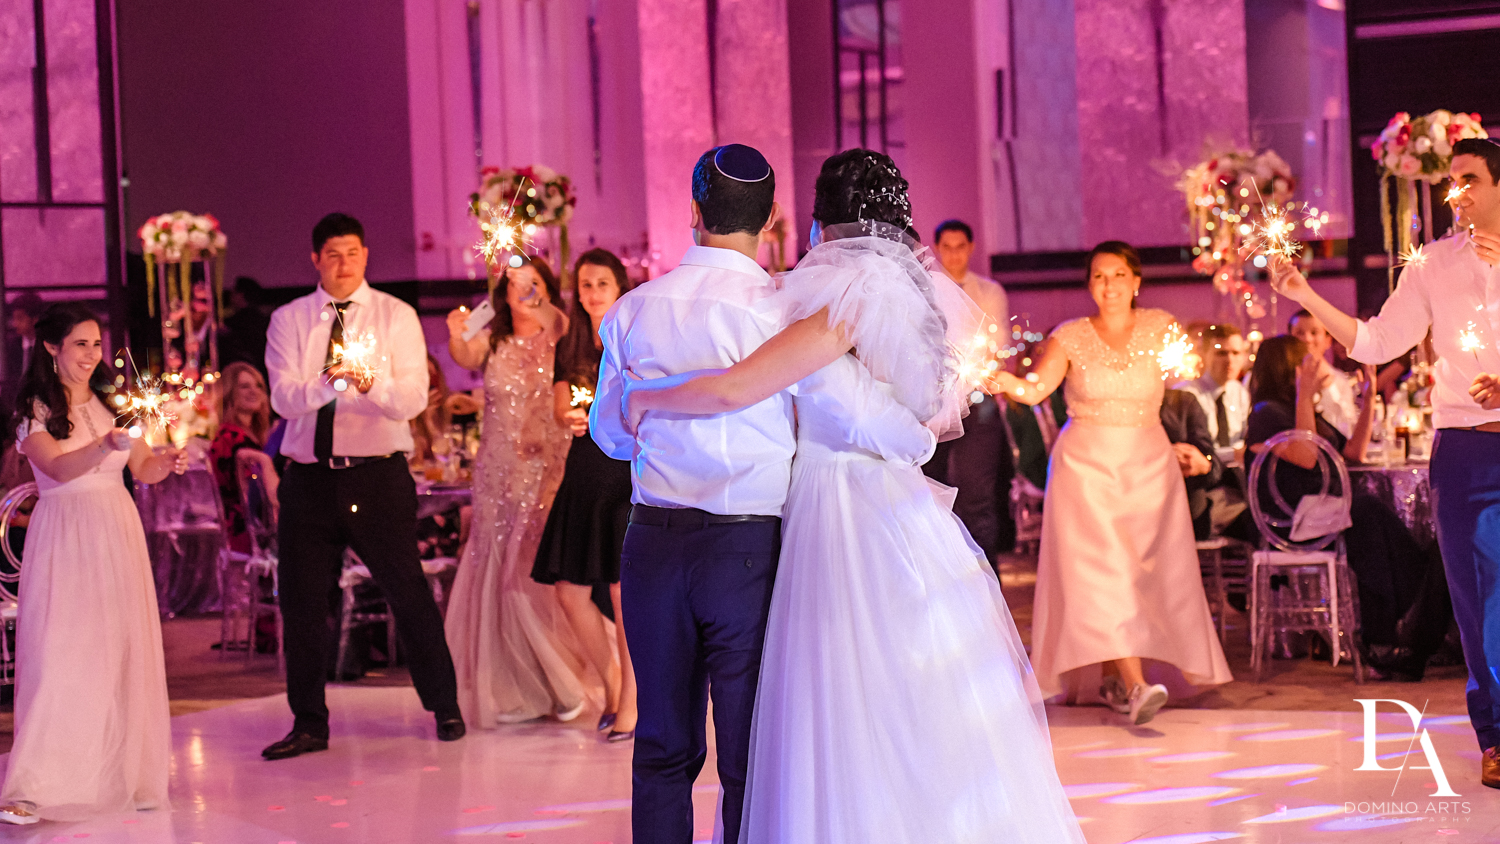 party photos at Fairy-Tale Wedding at BNai Torah Boca Raton by Domino Arts Photography